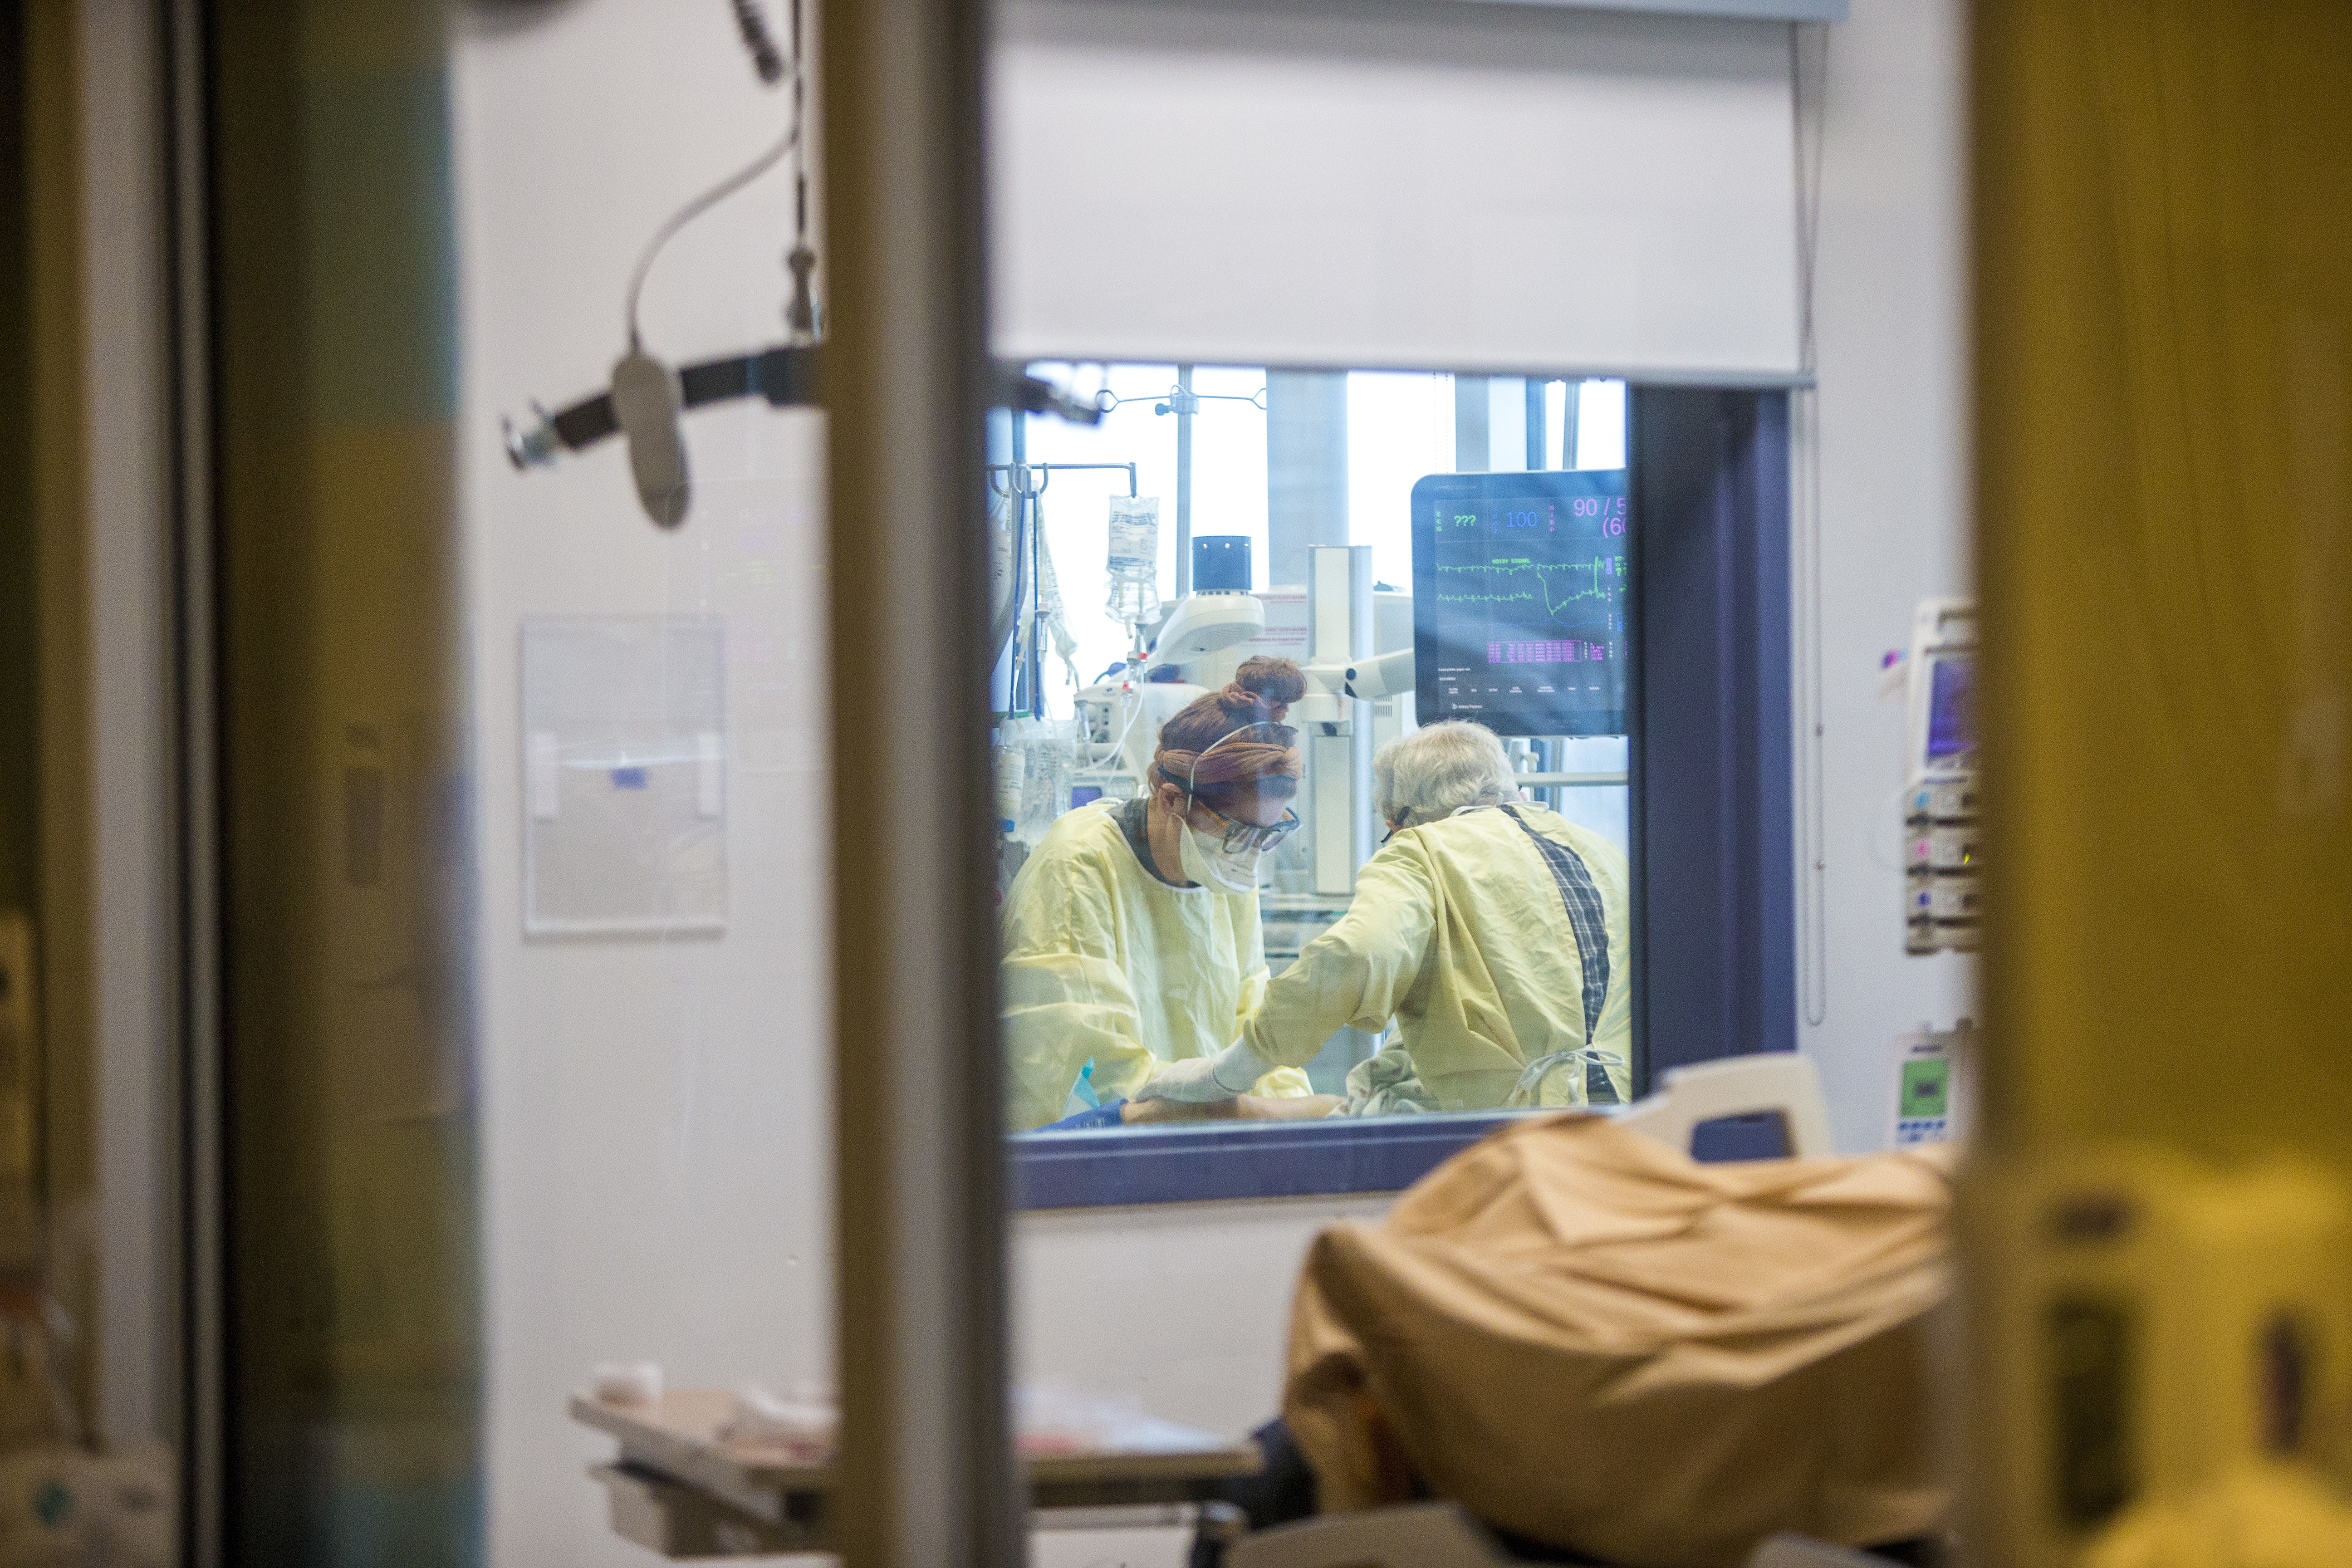 Critical-care workers have been arranged to work in teams as they move through the wards with COVID-19 patient. (Mikaela MacKenzie/Winnipeg Free Press/Canadian Press)